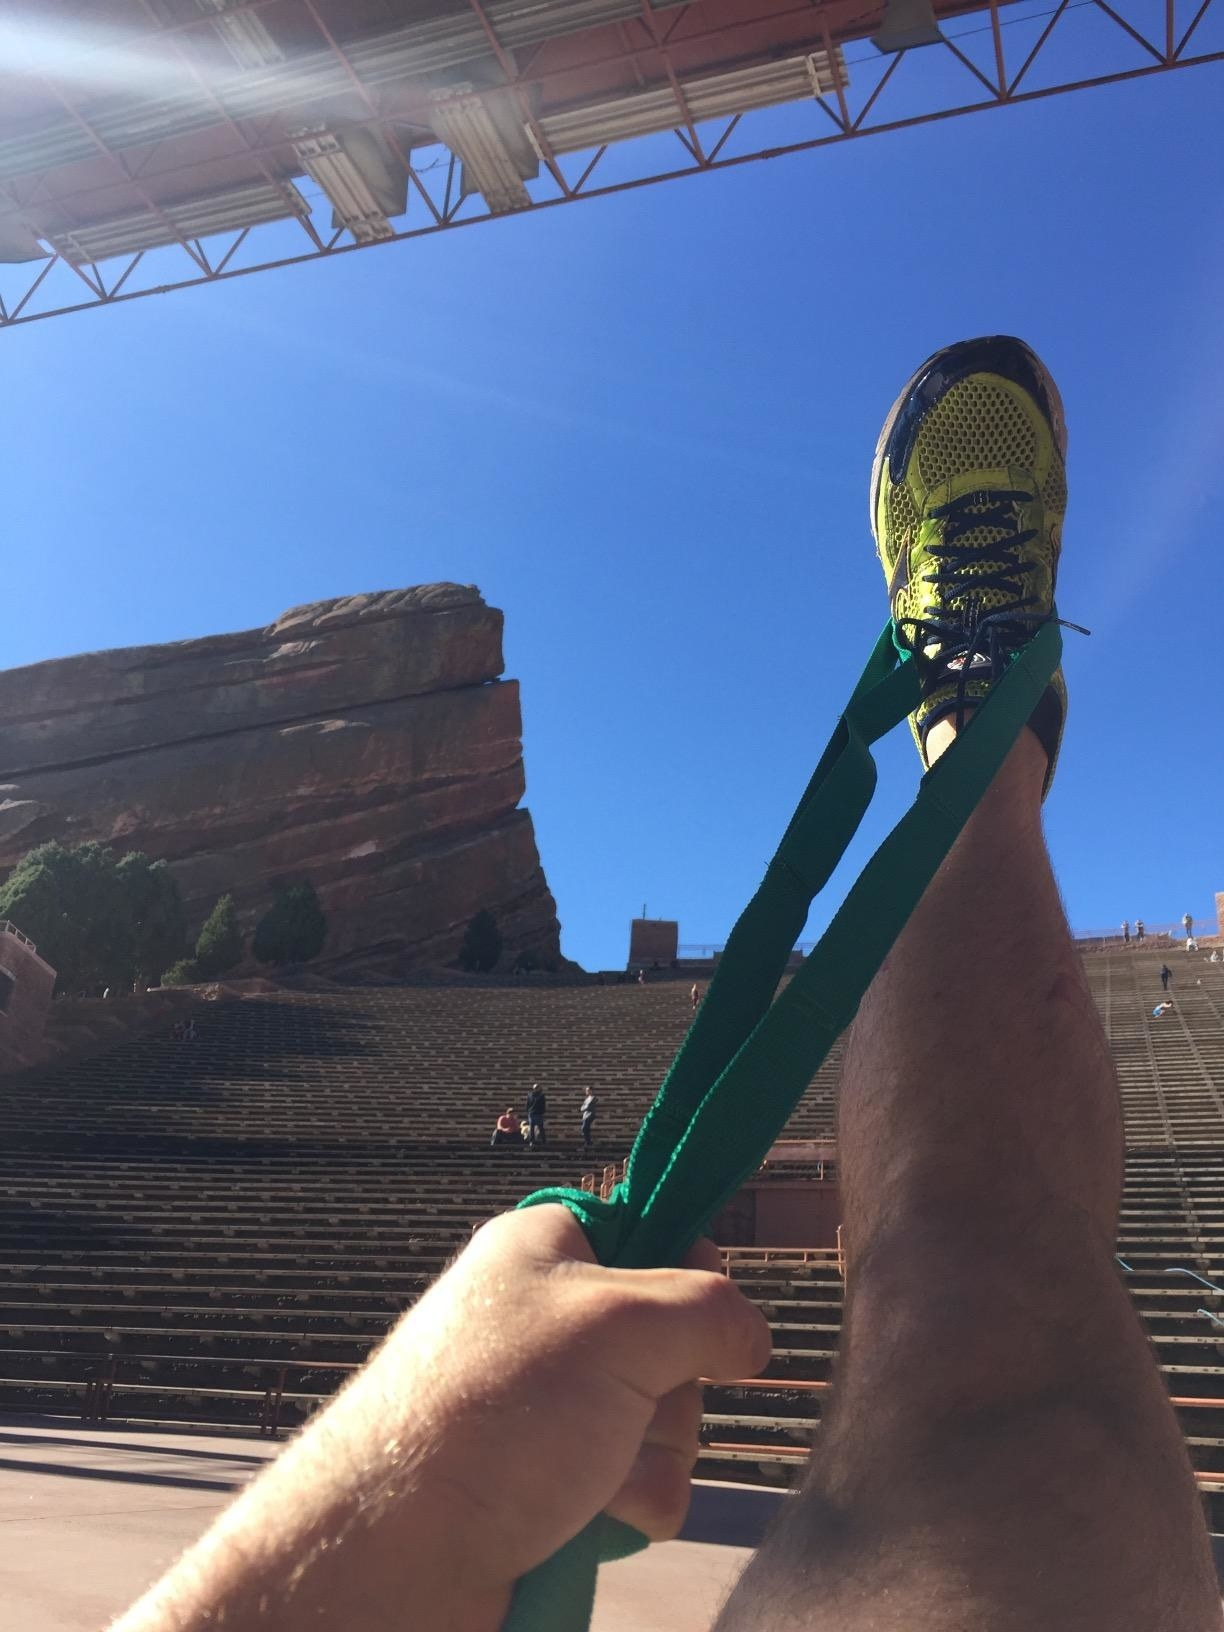 person stretching their right leg by gripping a green fabric strap around their foot